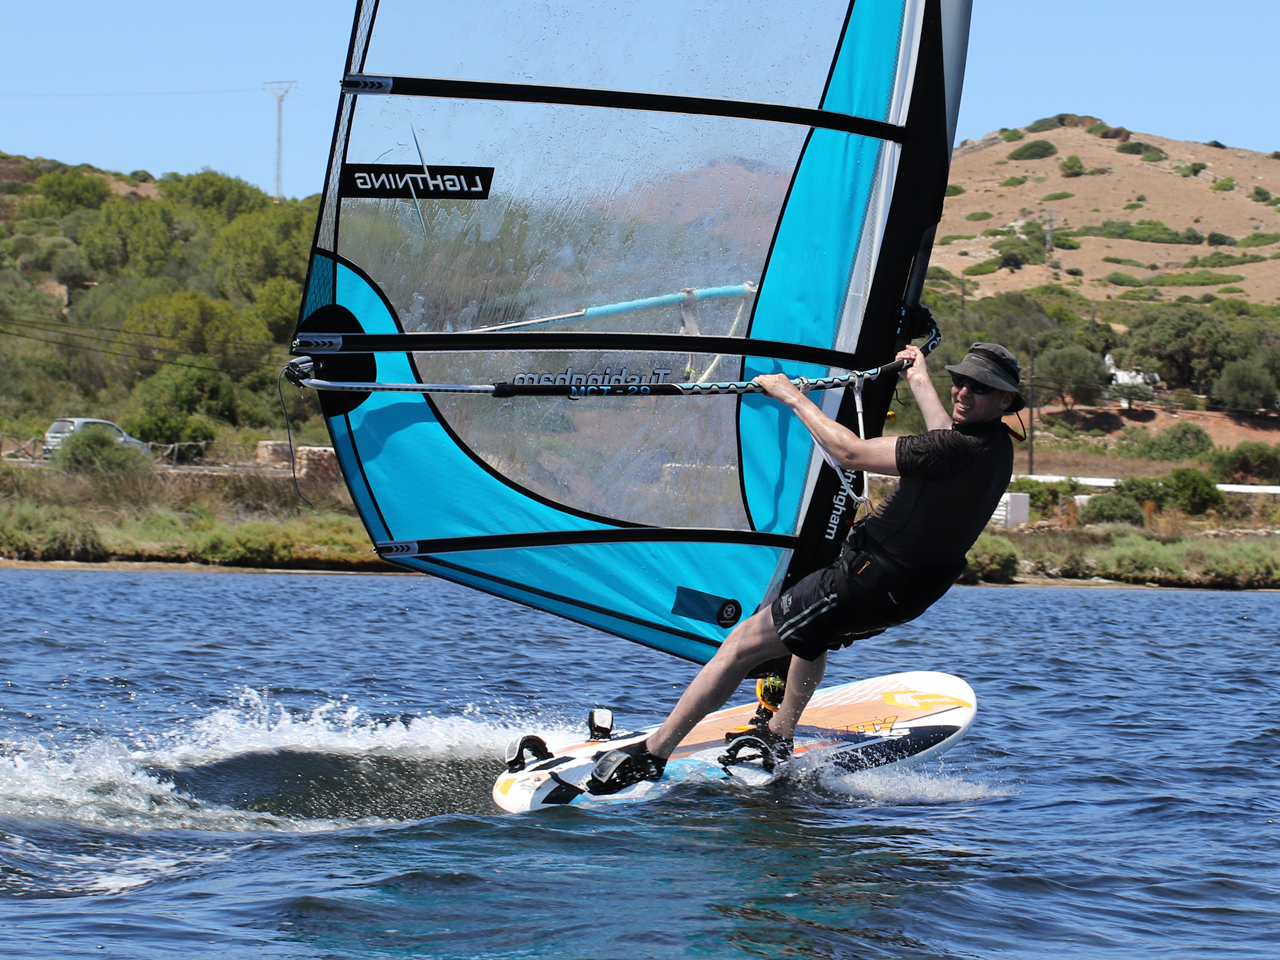 The Windsurfing Holiday